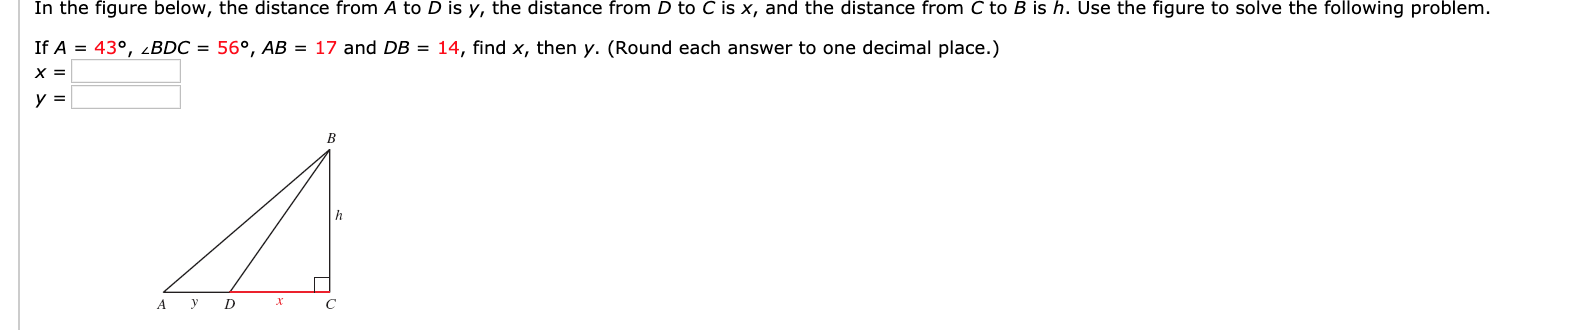 In the figure below, the distance from A to D is y, the distance from D to C is x, and the distance from C to B is h. Use the figure to solve the following problem. If A = 43°, 2BDC = 56°, AB = 17 and DB = 14, find x, then y. (Round each answer to one decimal place.) х 3 B D